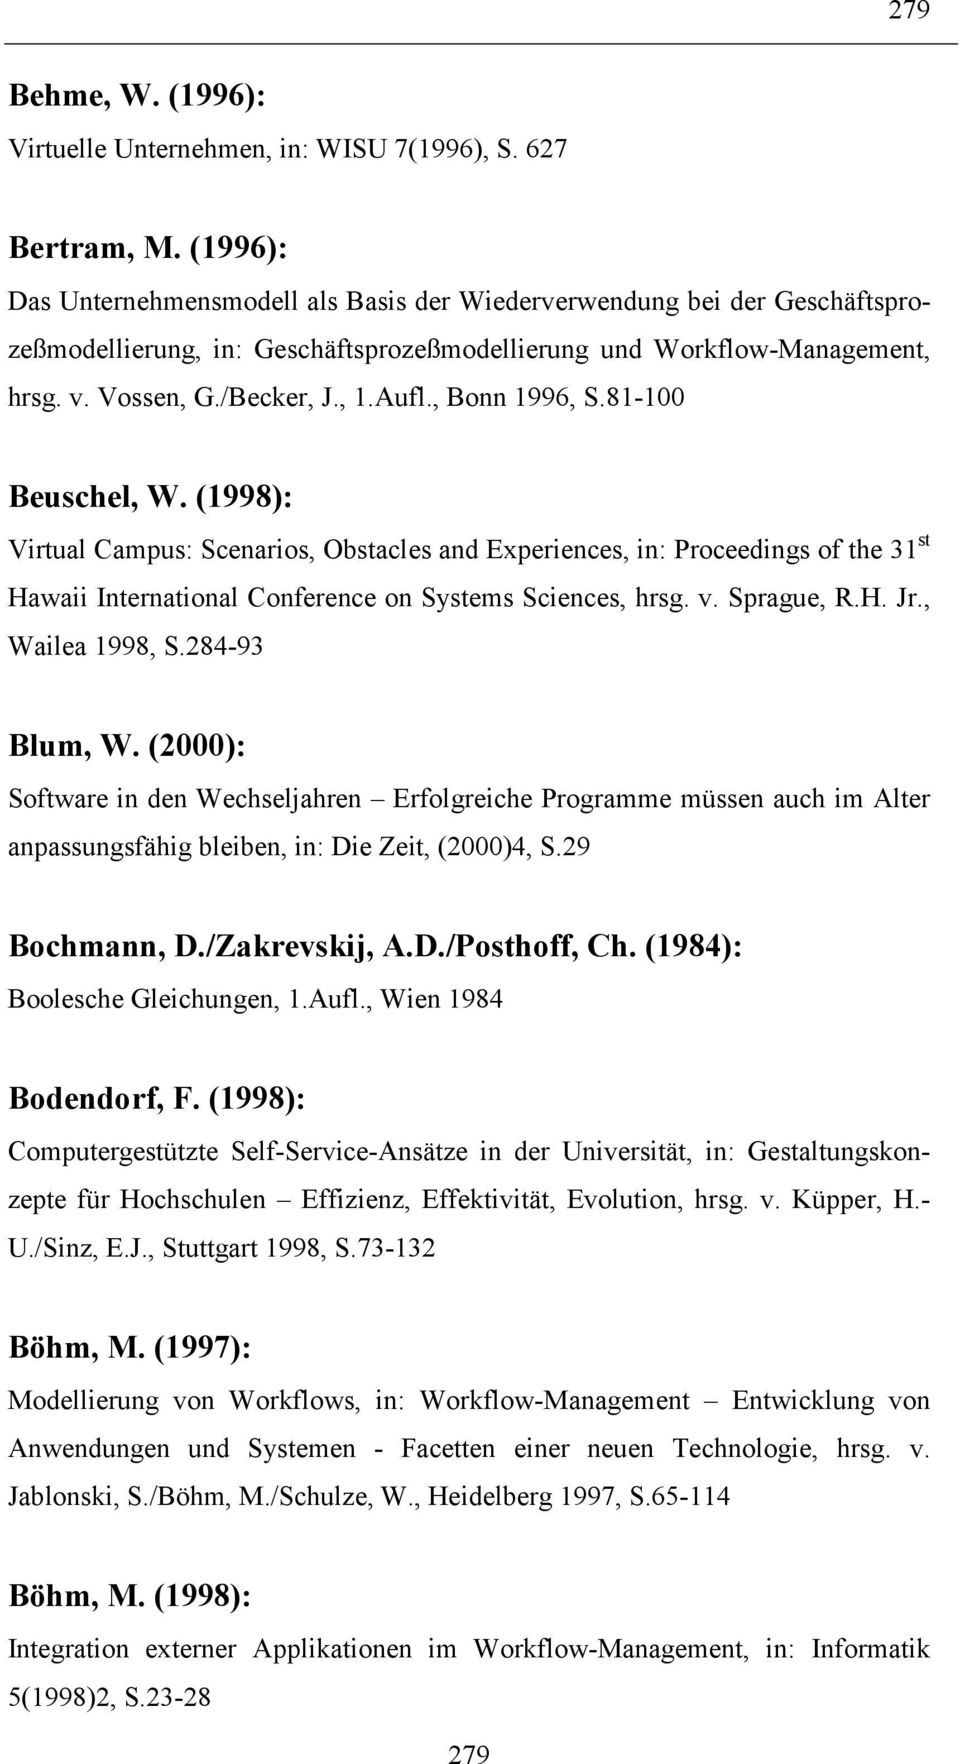 , Bonn 1996, S.81-100 Beuschel, W. (1998): Virtual Campus: Scenarios, Obstacles and Experiences, in: Proceedings of the 31 st Hawaii International Conference on Systems Sciences, hrsg. v. Sprague, R.